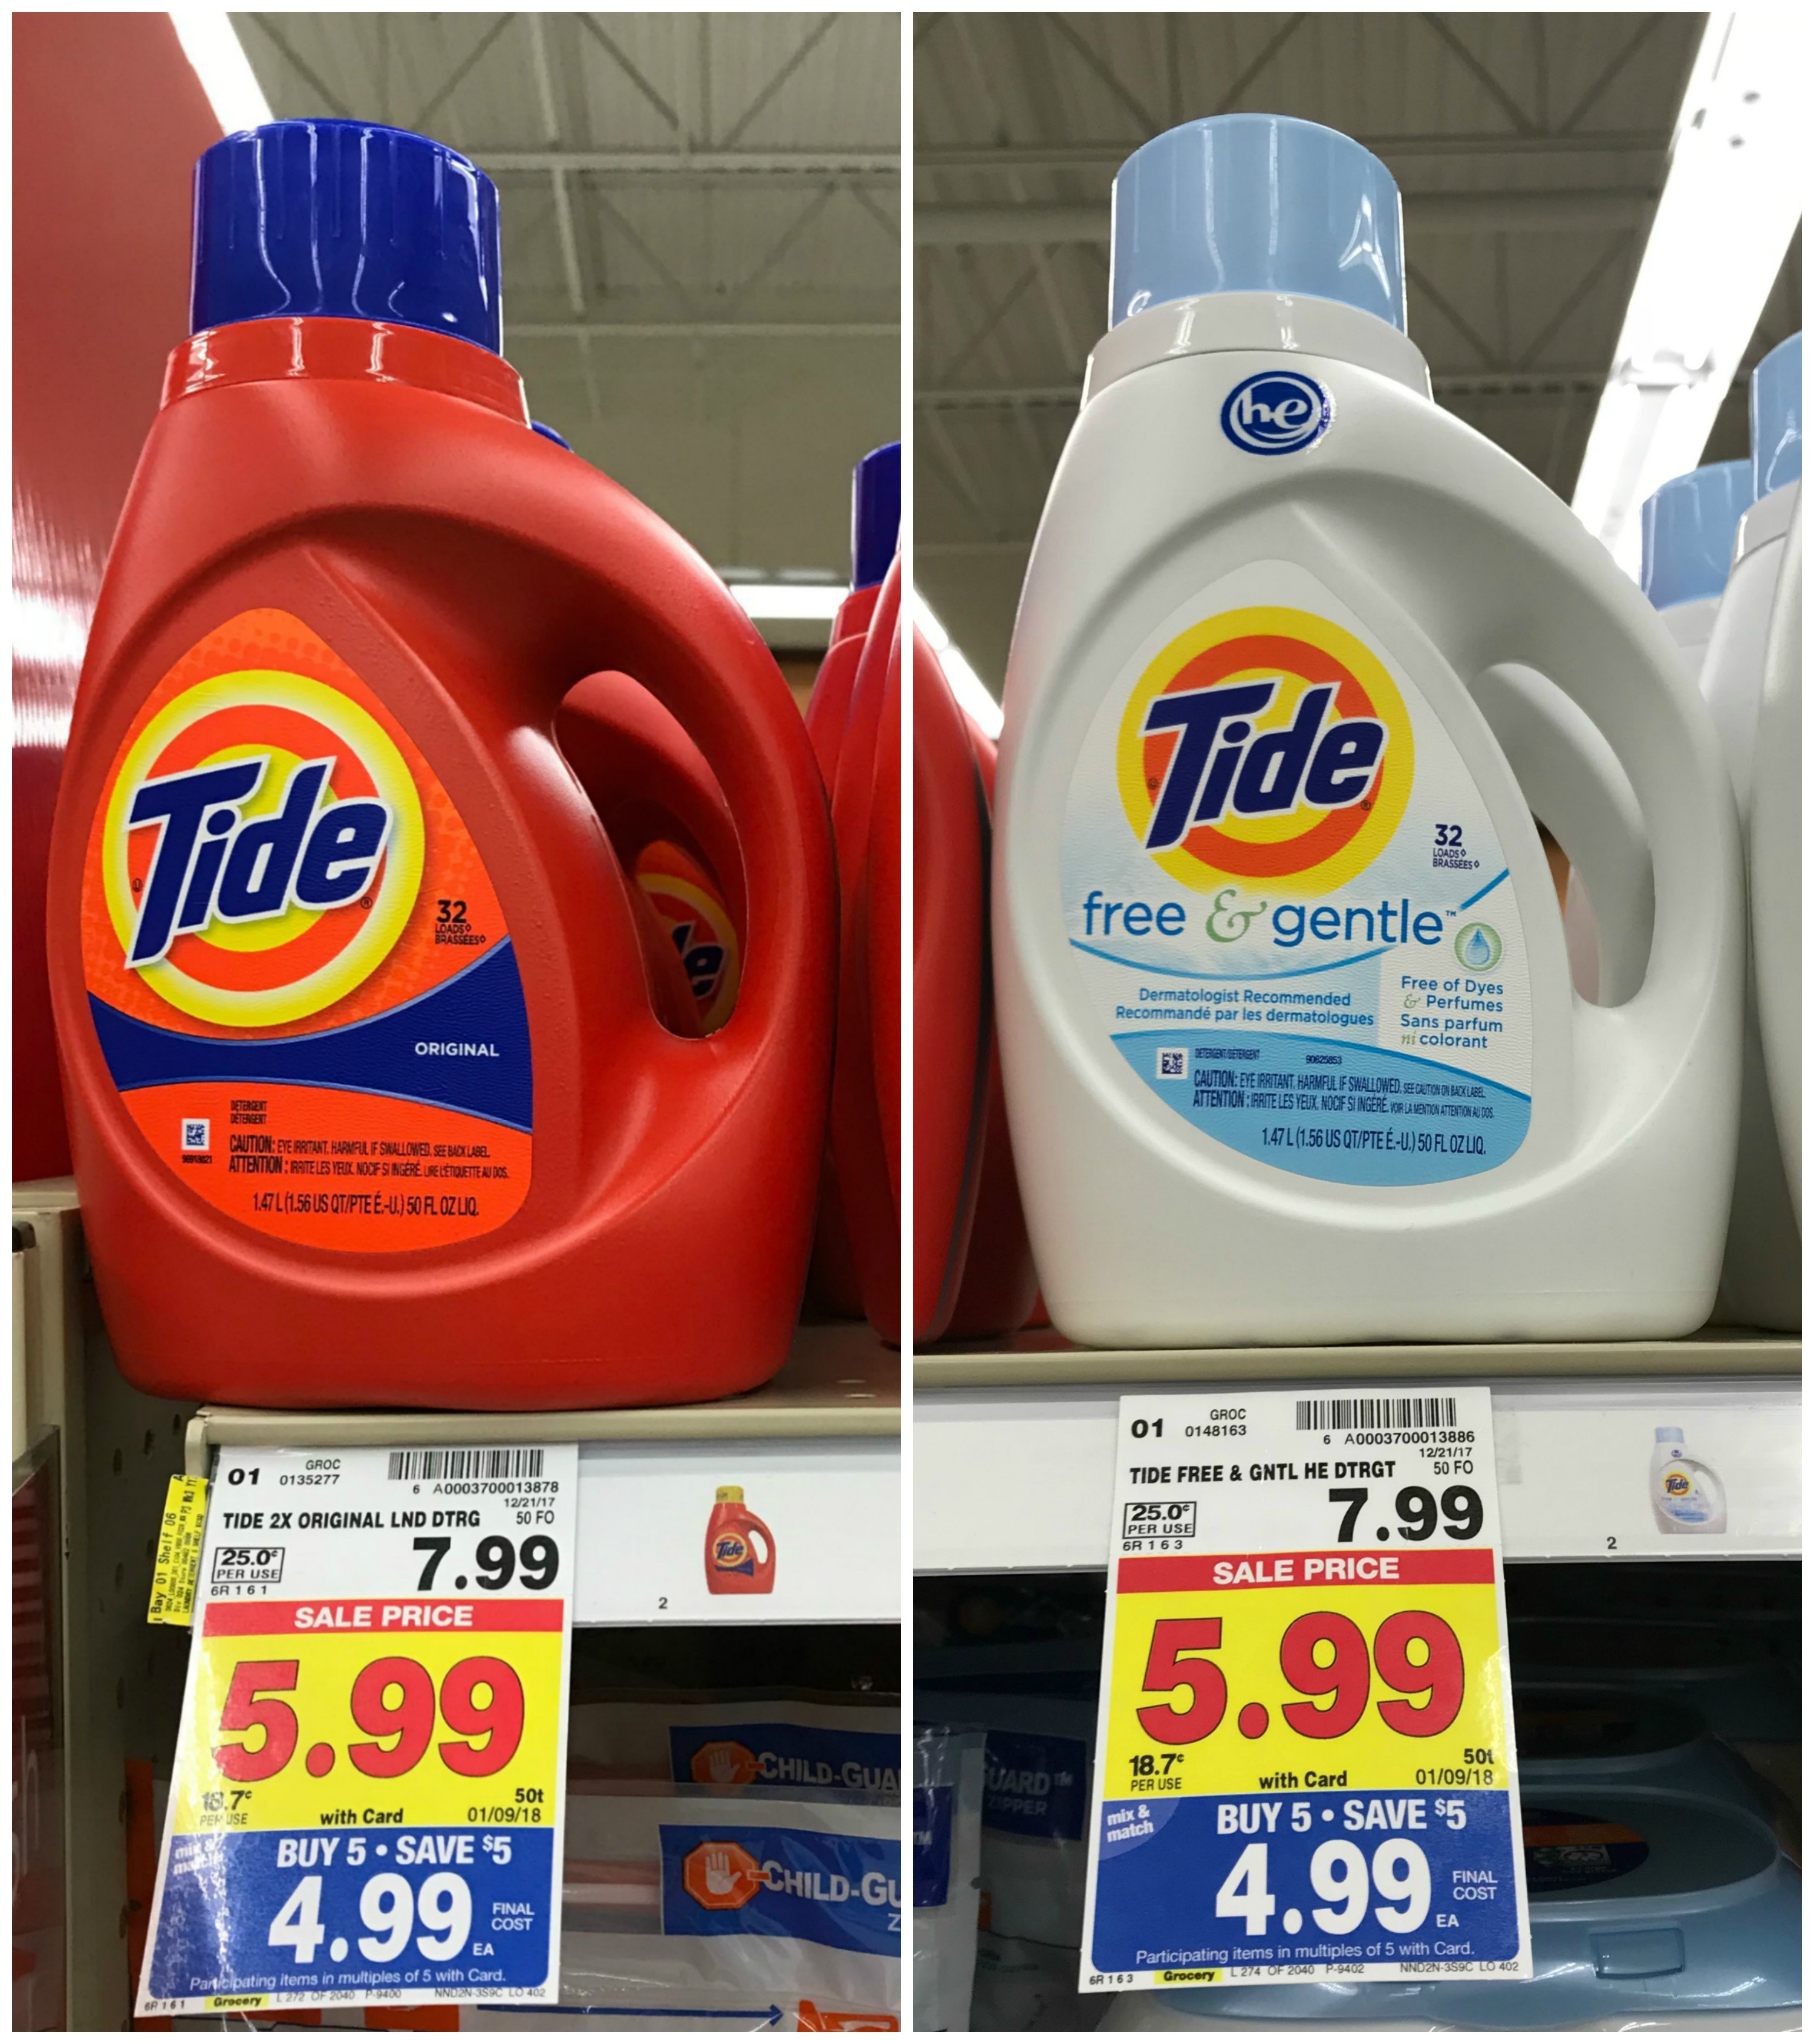 new tide liquid laundry coupons   only  2 99 at kroger